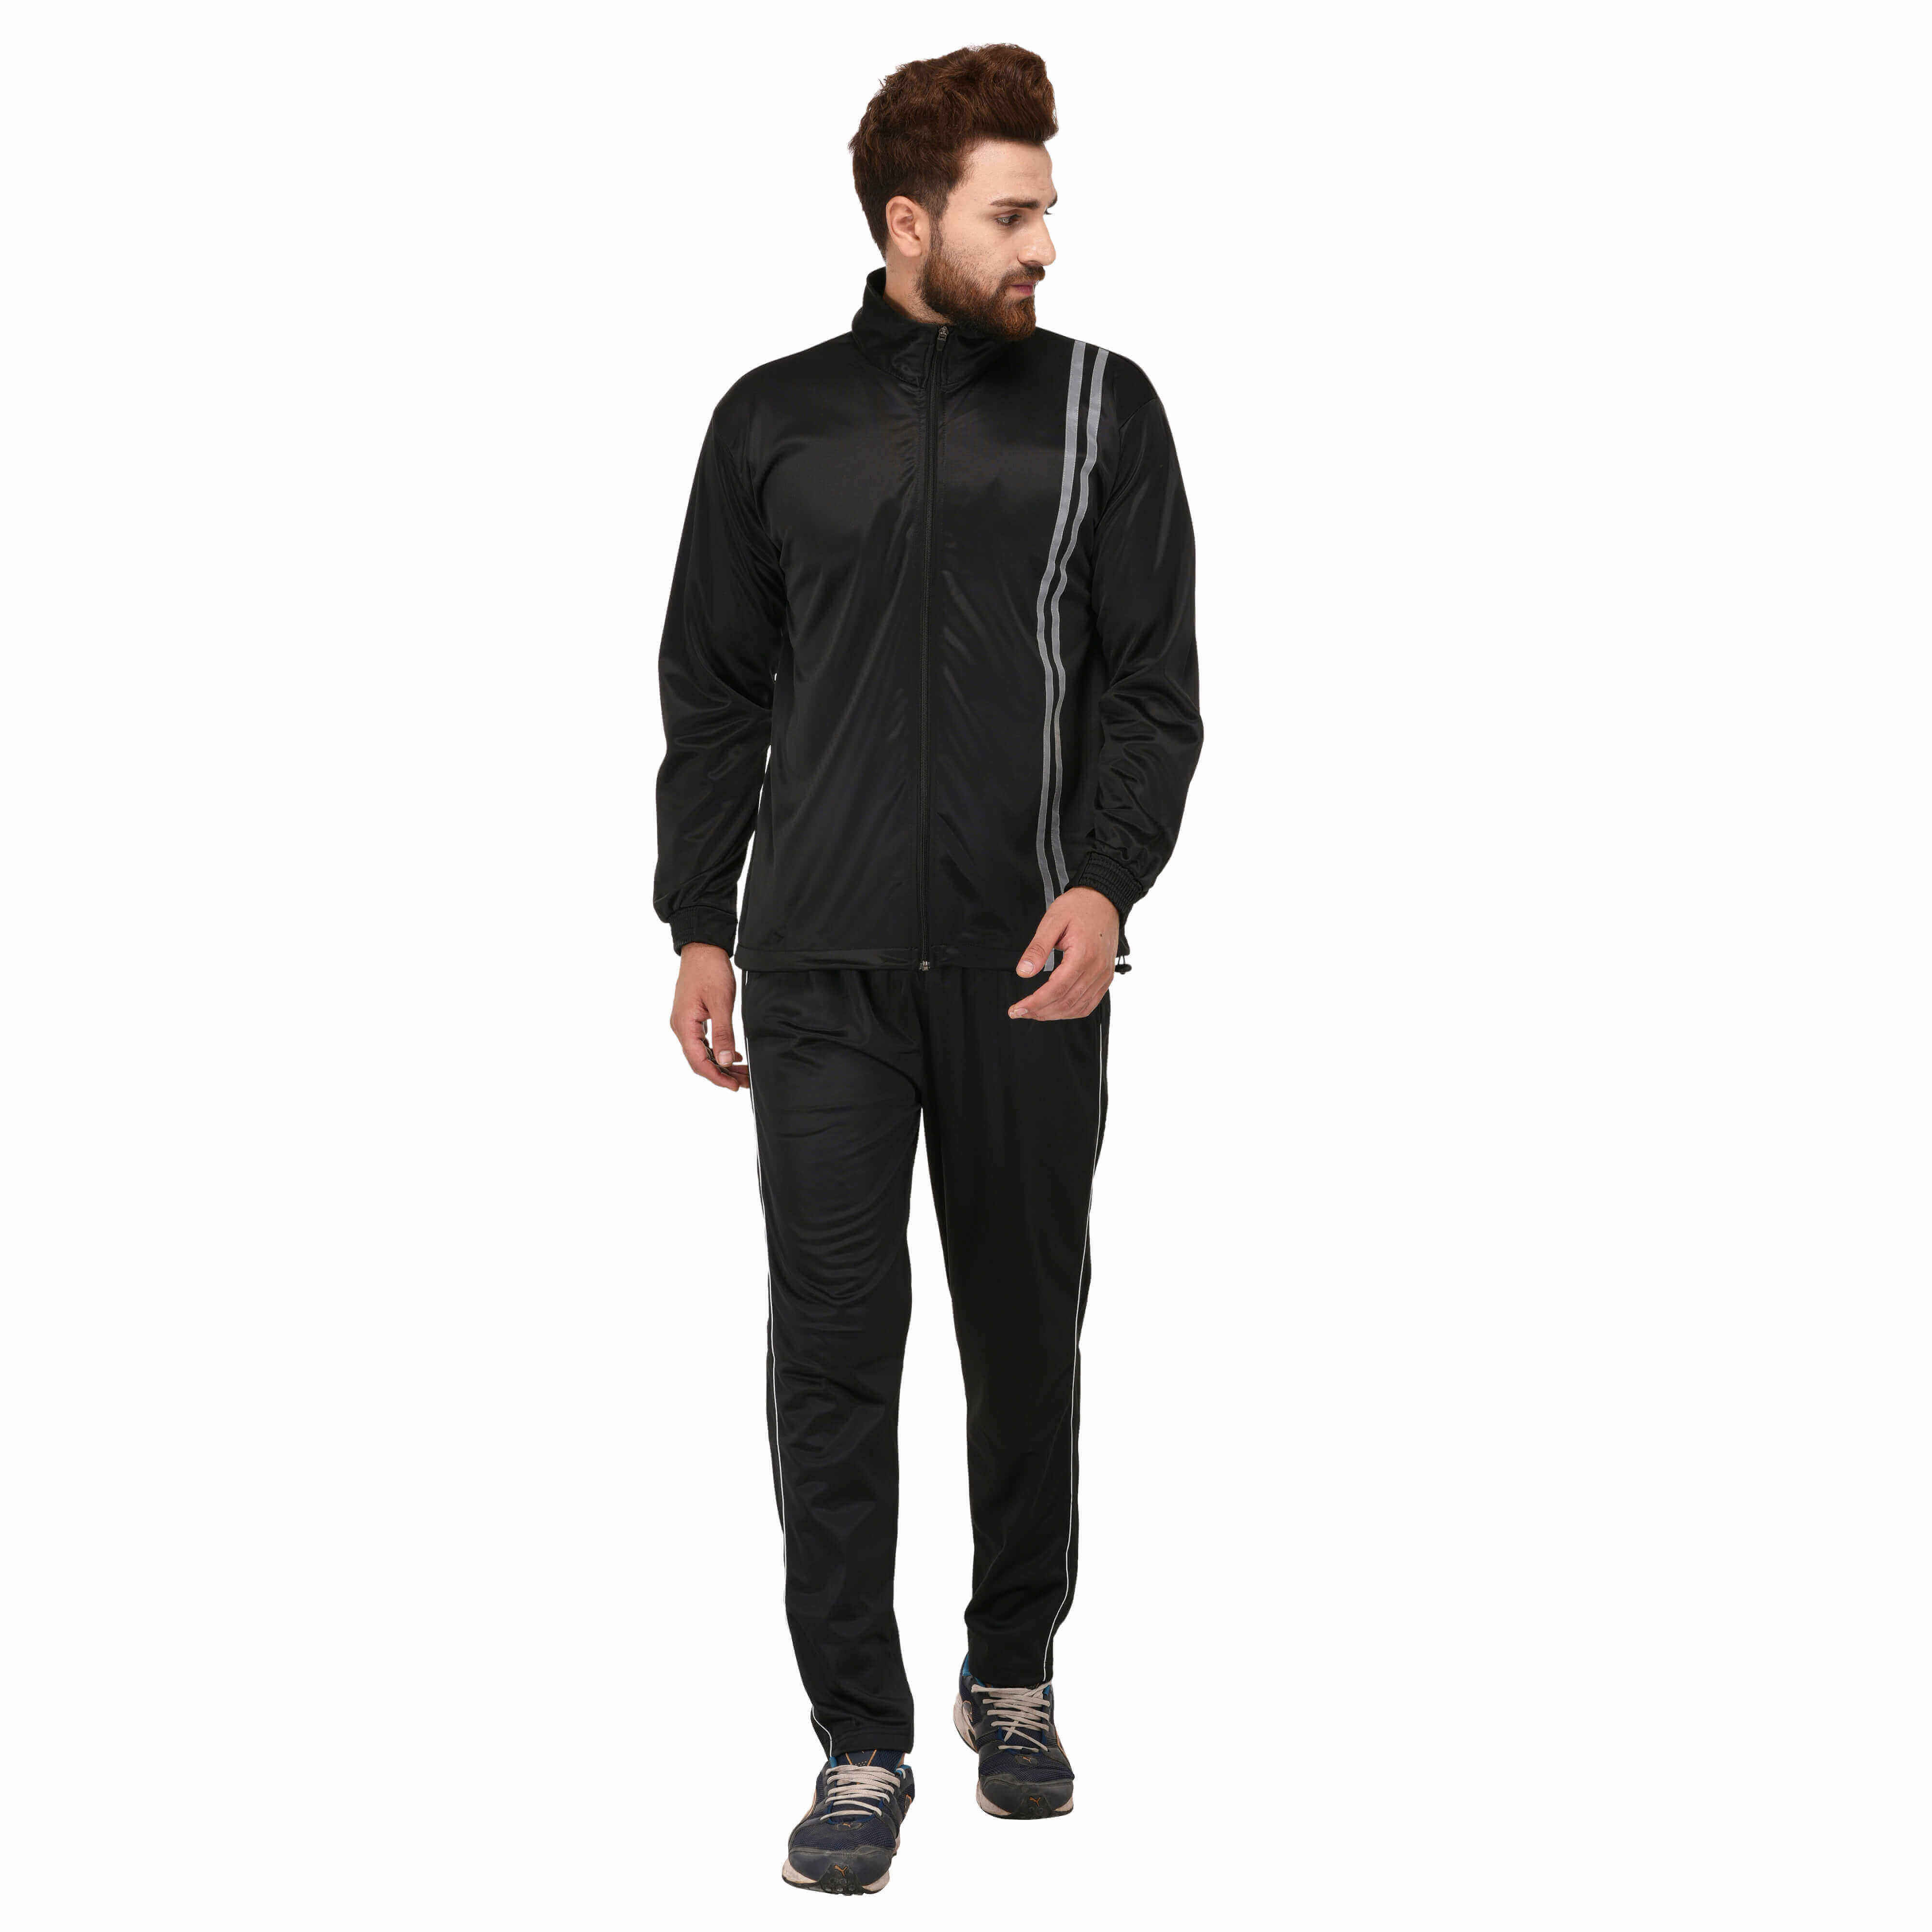 Mens Tracksuit Set Manufacturers in United-states-of-america